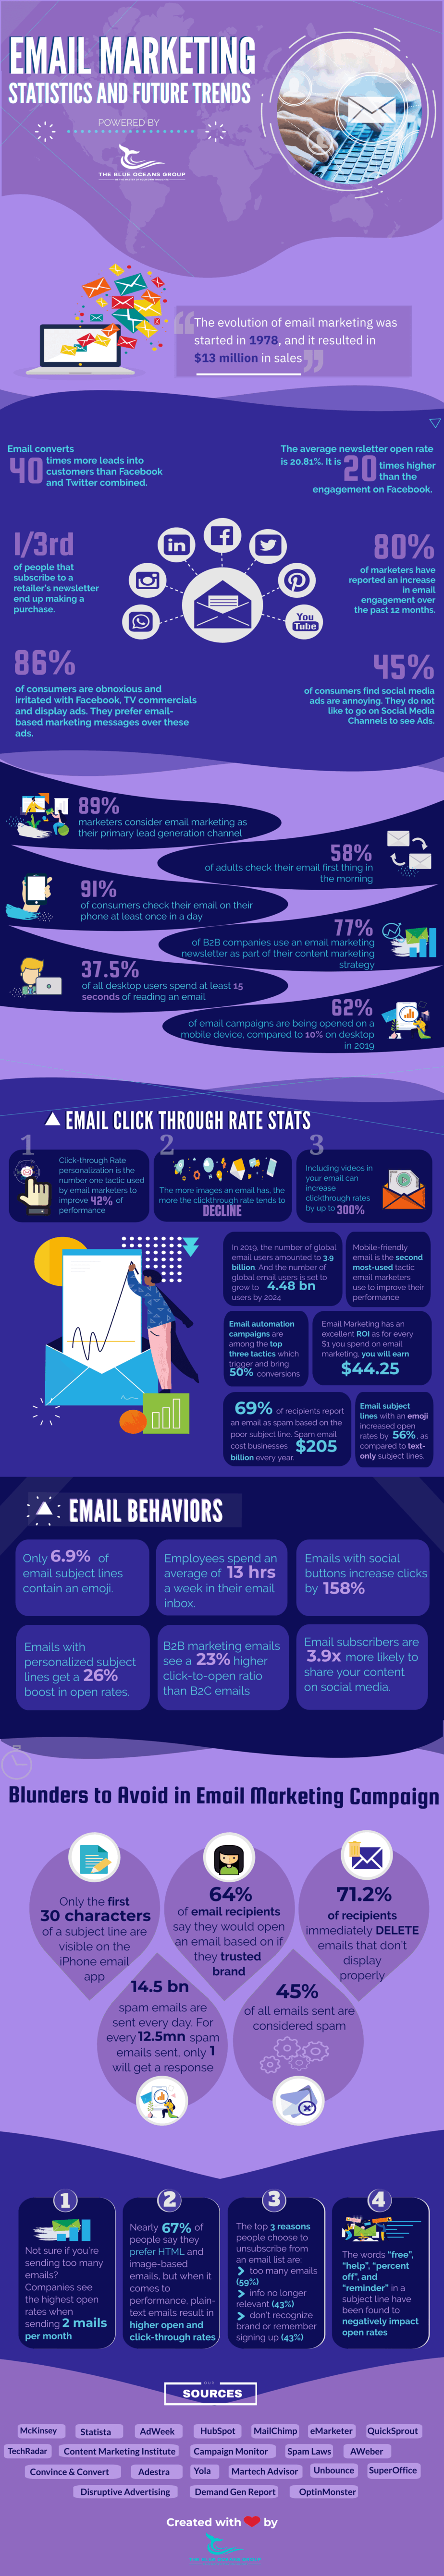 39 Ultimate Email Marketing Statistics in 2021 Infographic Image